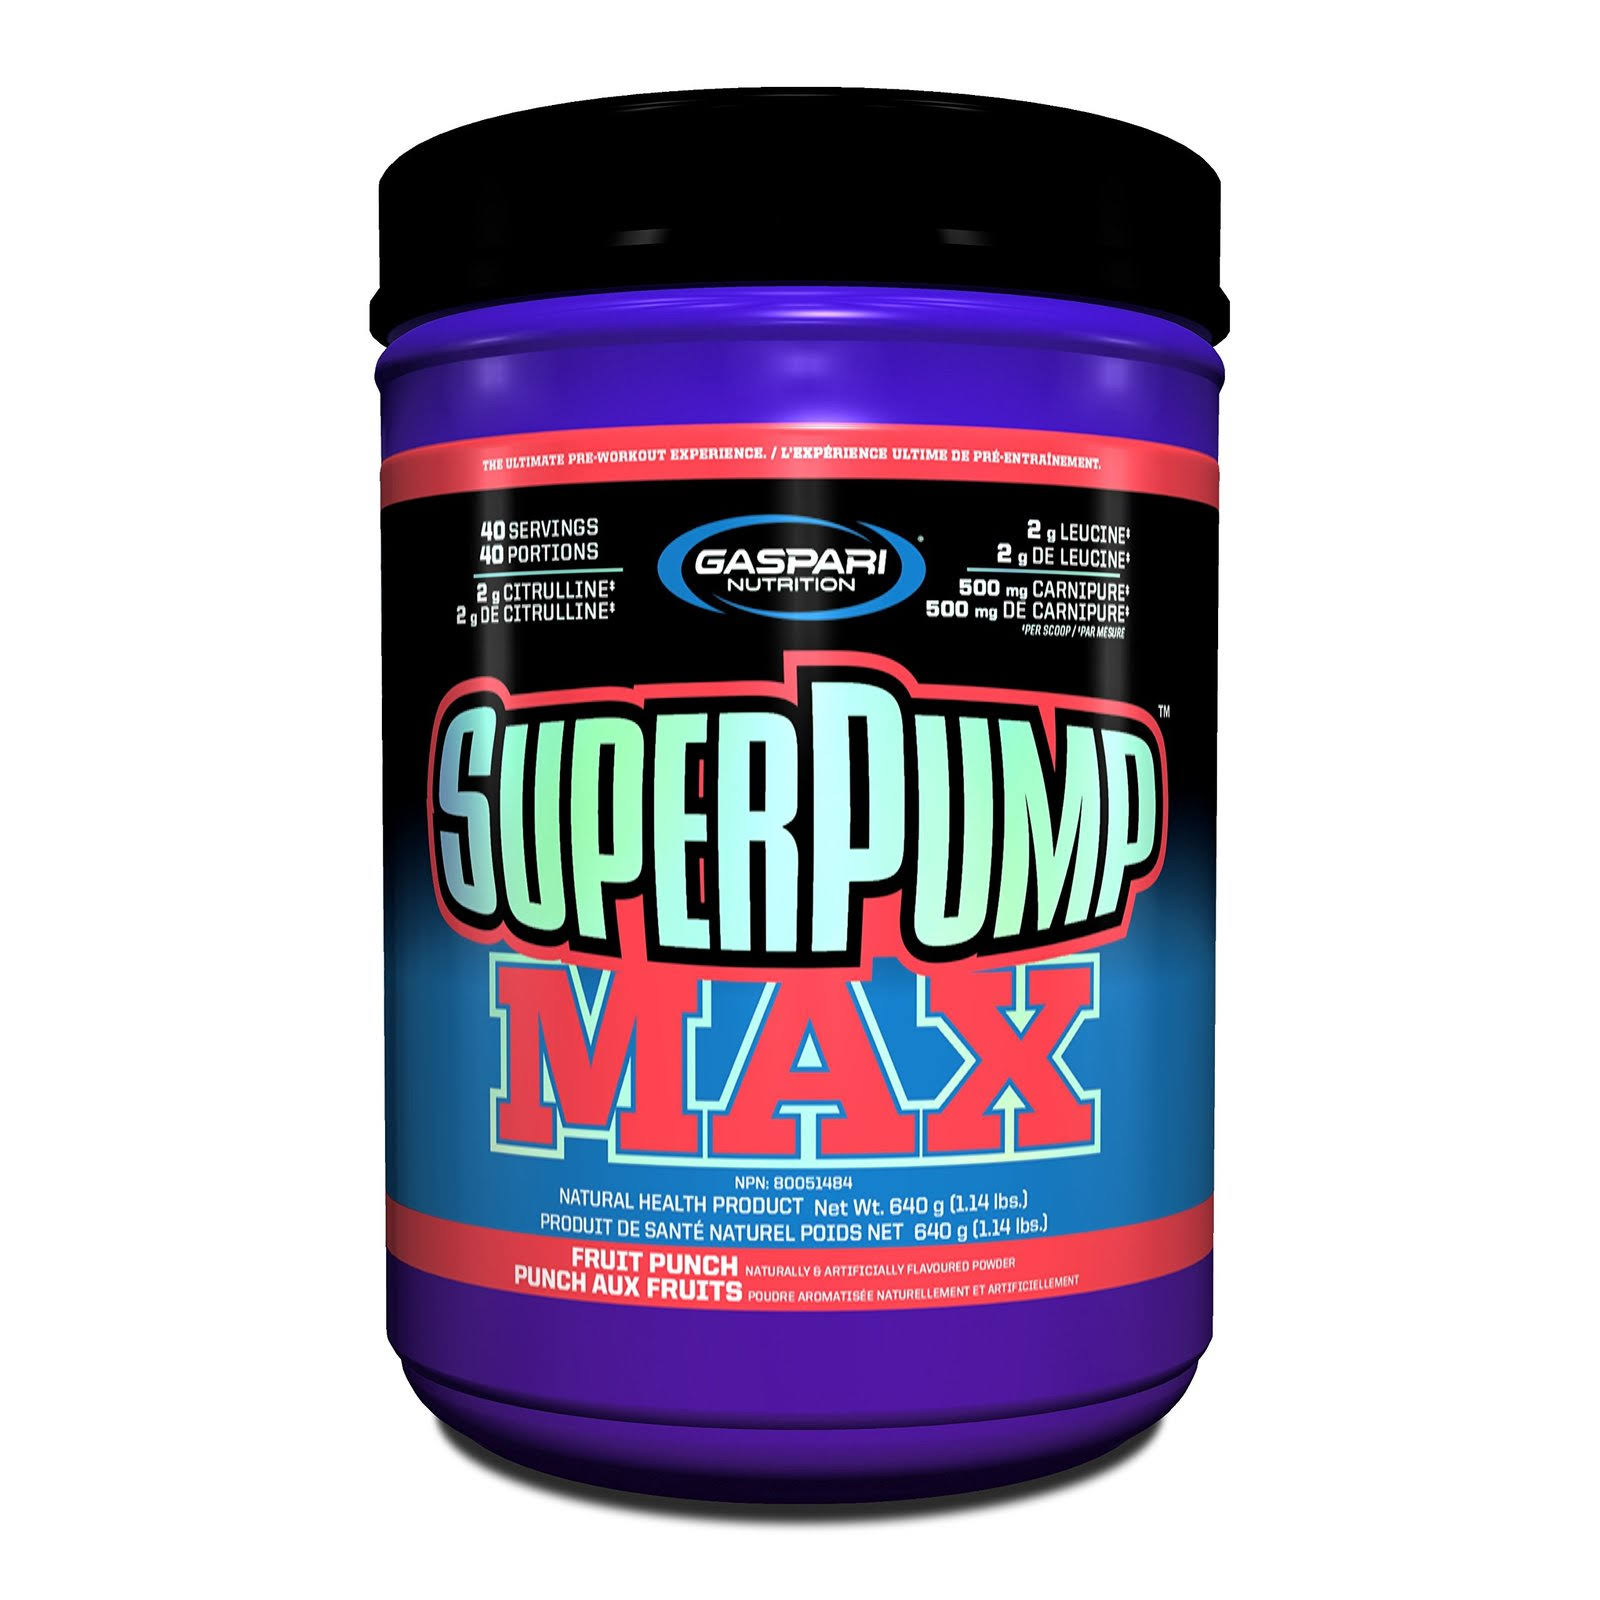 Gaspari Nutrition Super Pump Max Supplement - Fruit Punch, 1.41lb